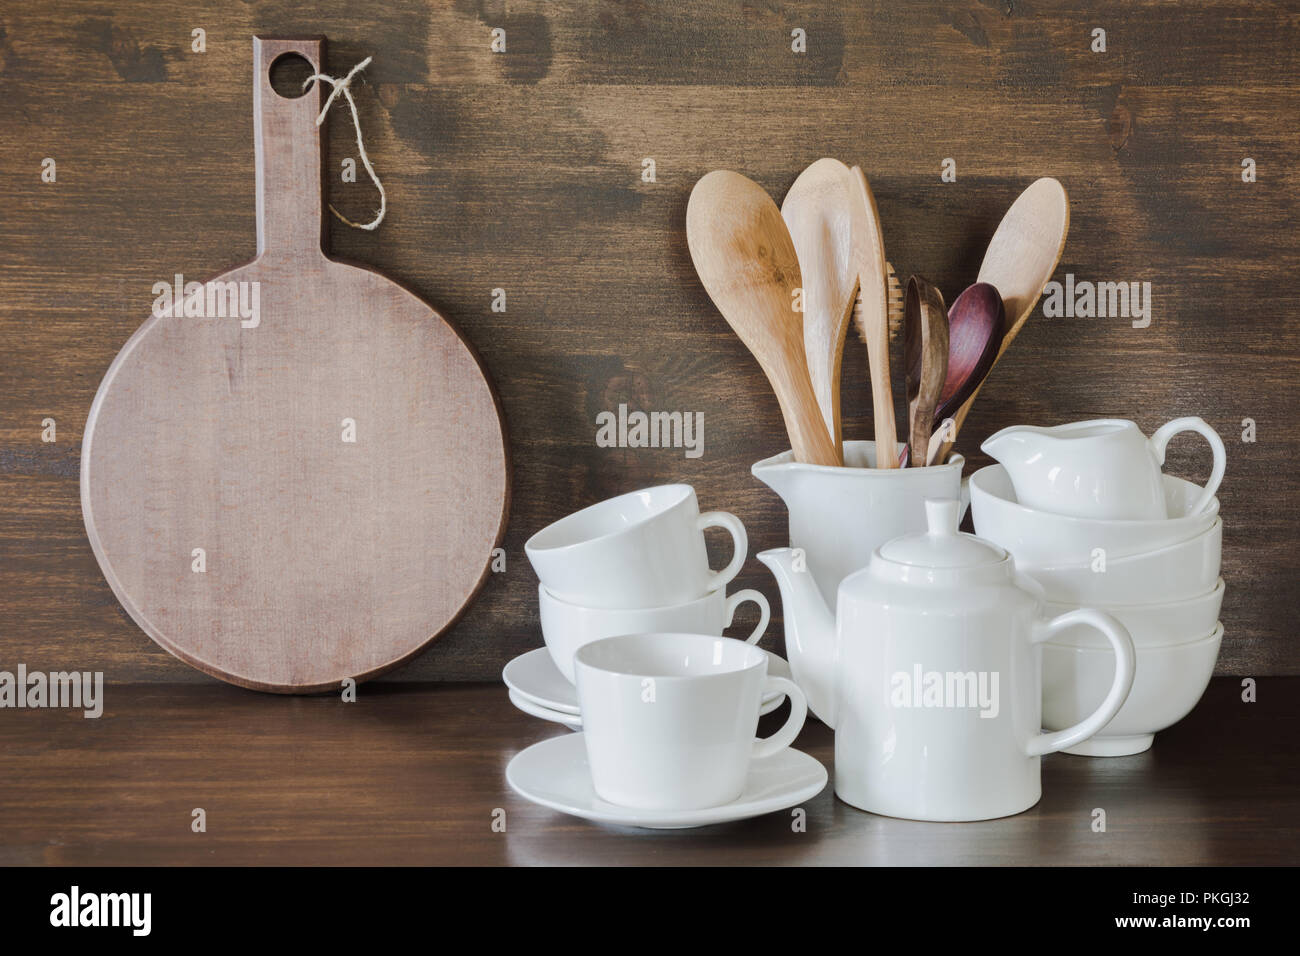 Crockery Clayware White Utensils And Other Different